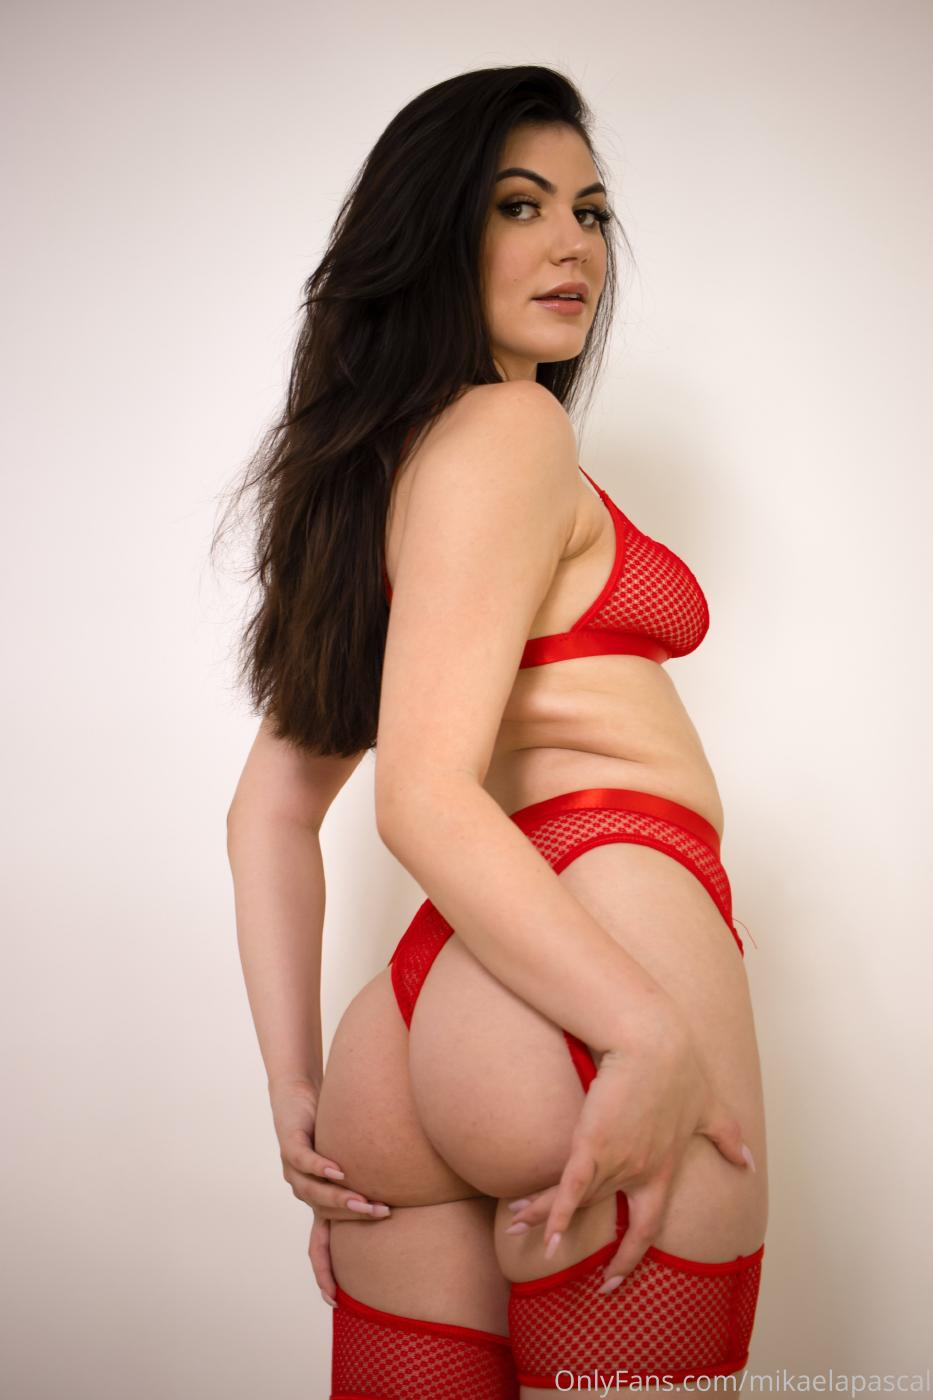 Mikaela Pascal Red Lingerie Onlyfans Set Leaked 0004